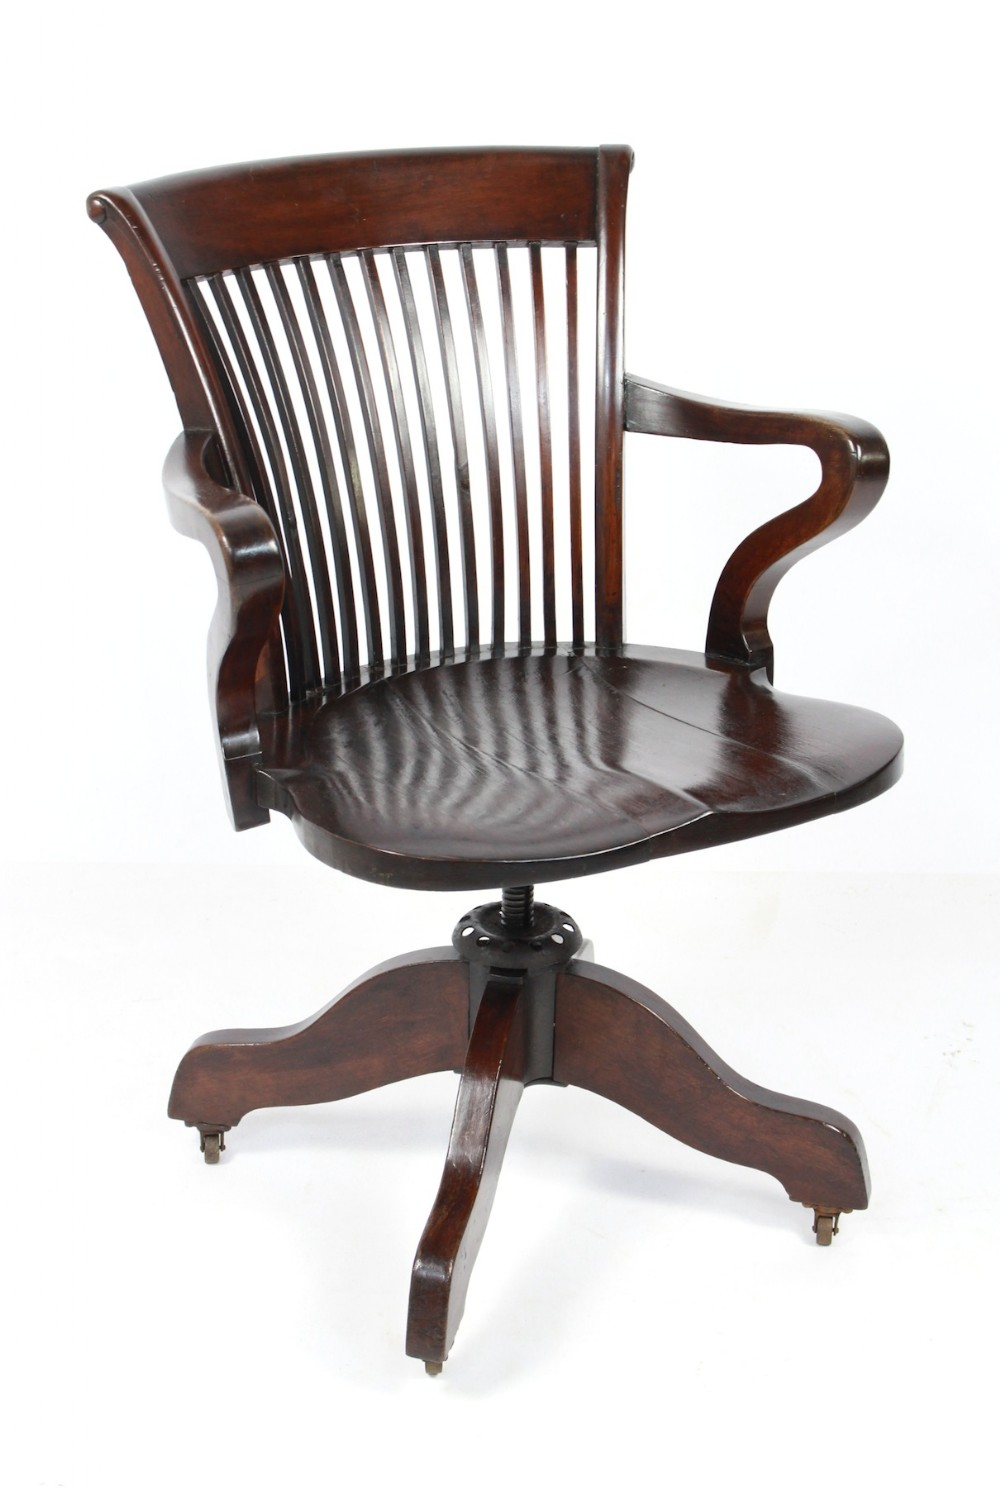 Edwardian Captains Desk Office Chair Swivel Adjust